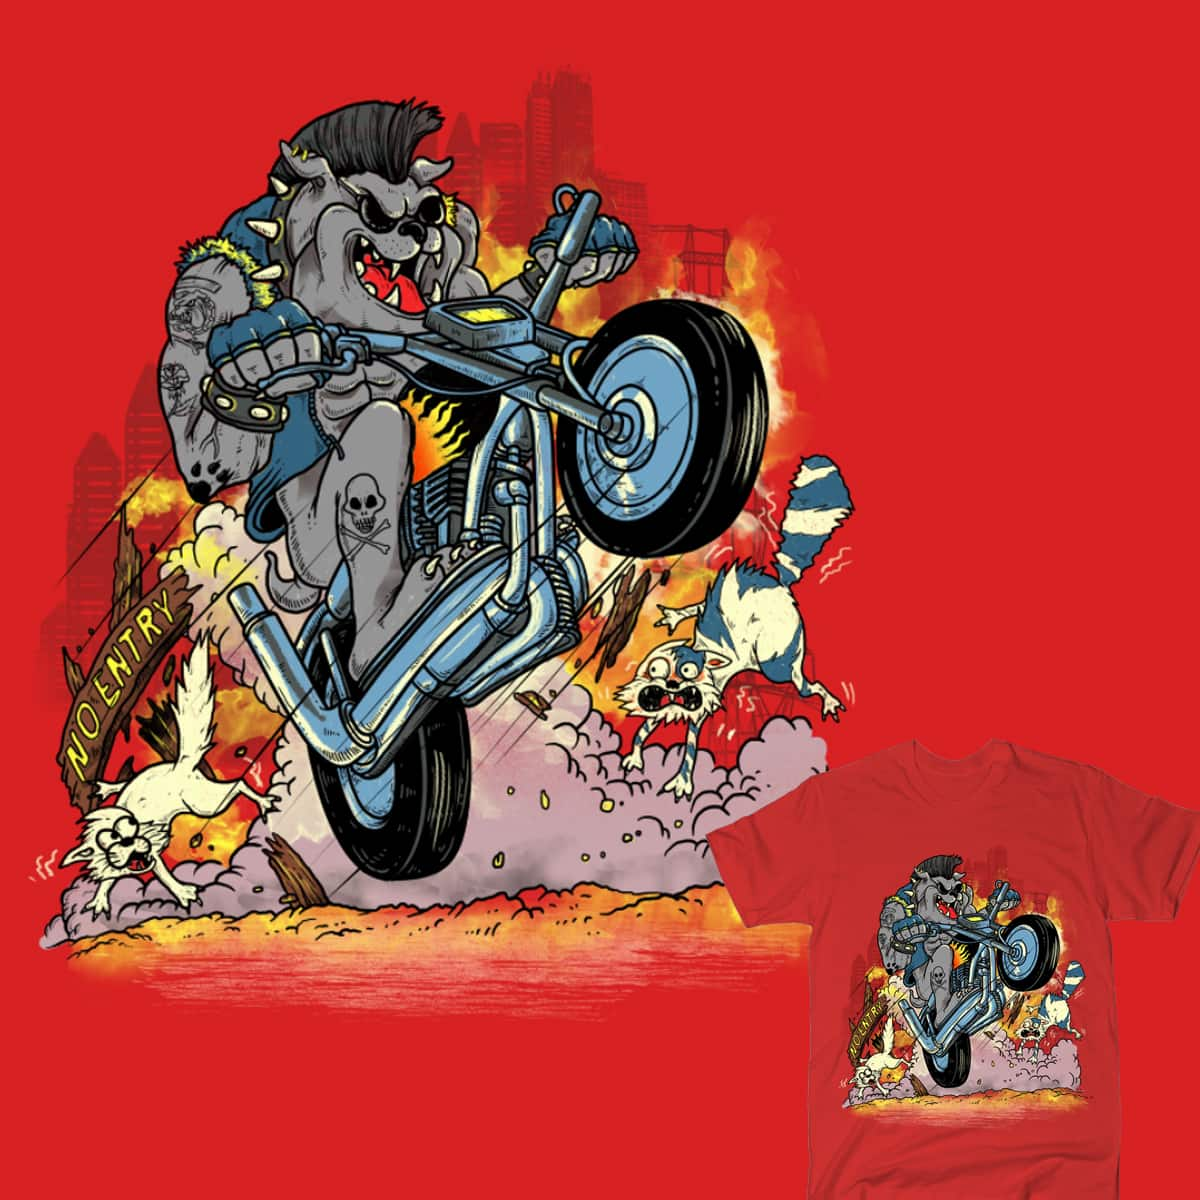 HERE COMES THE MAD DOG by dandingeroz and gaci on Threadless